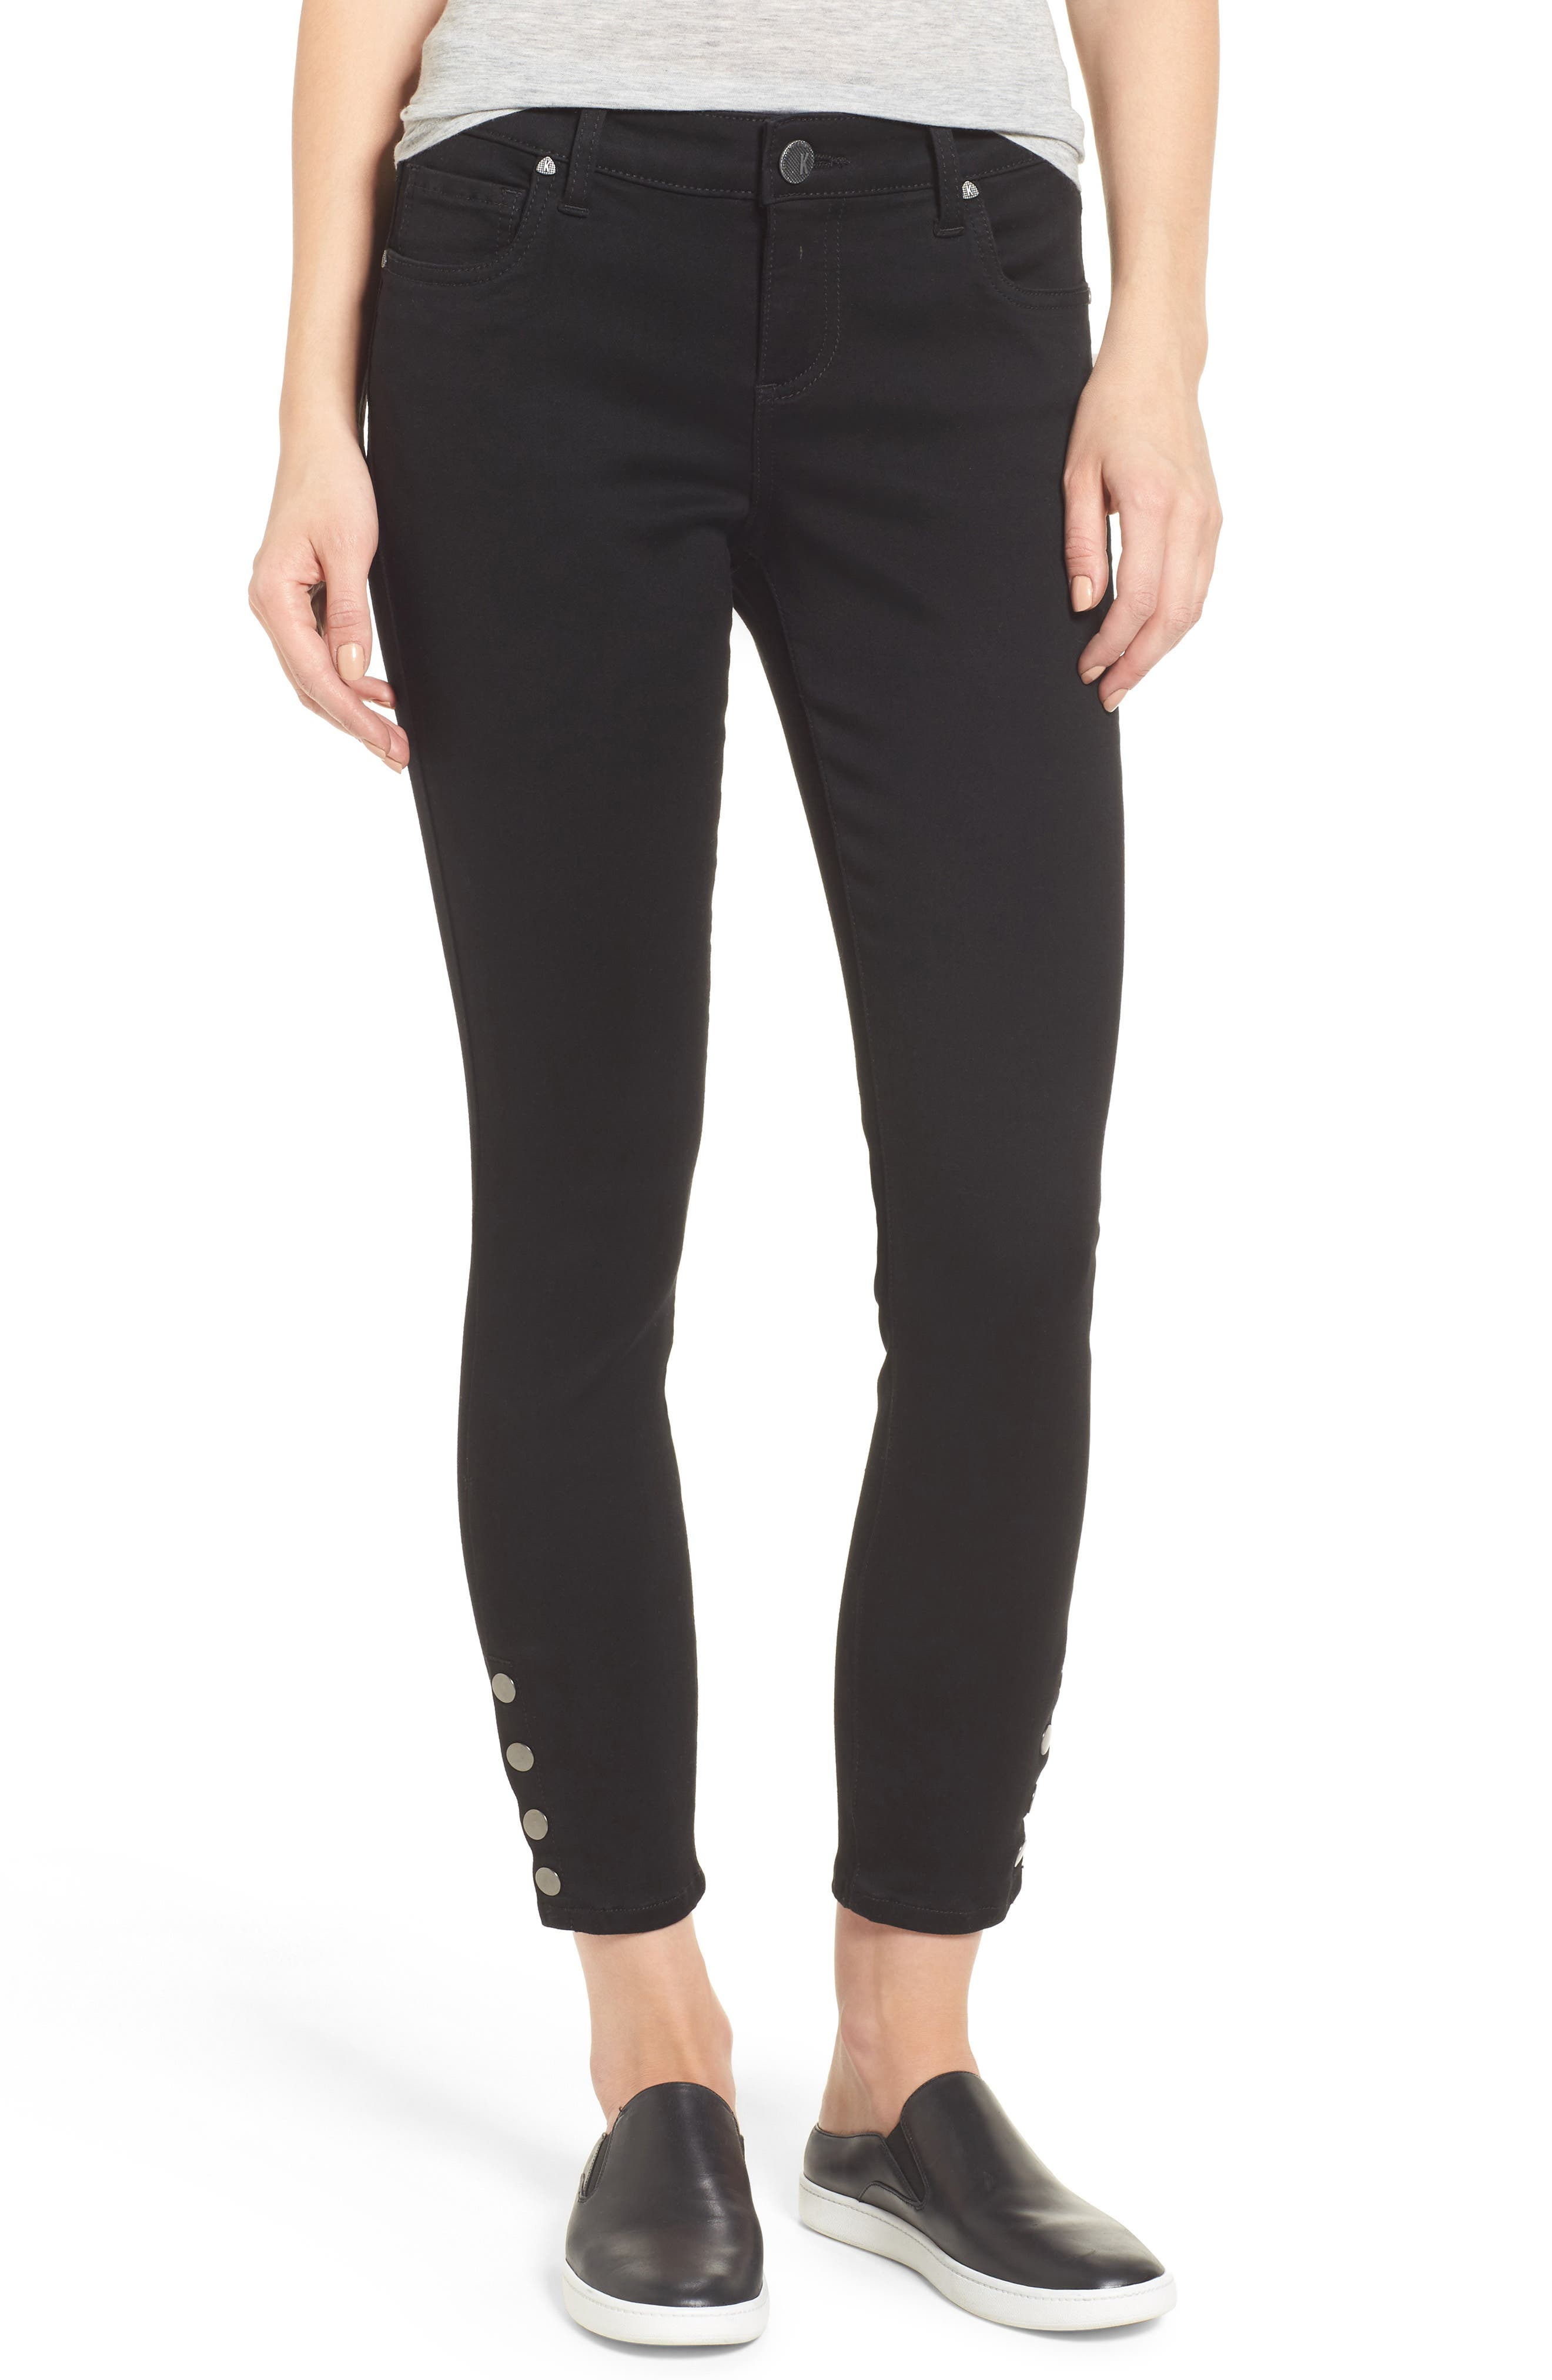 Snap Ankle Jeans,                         Main,                         color,